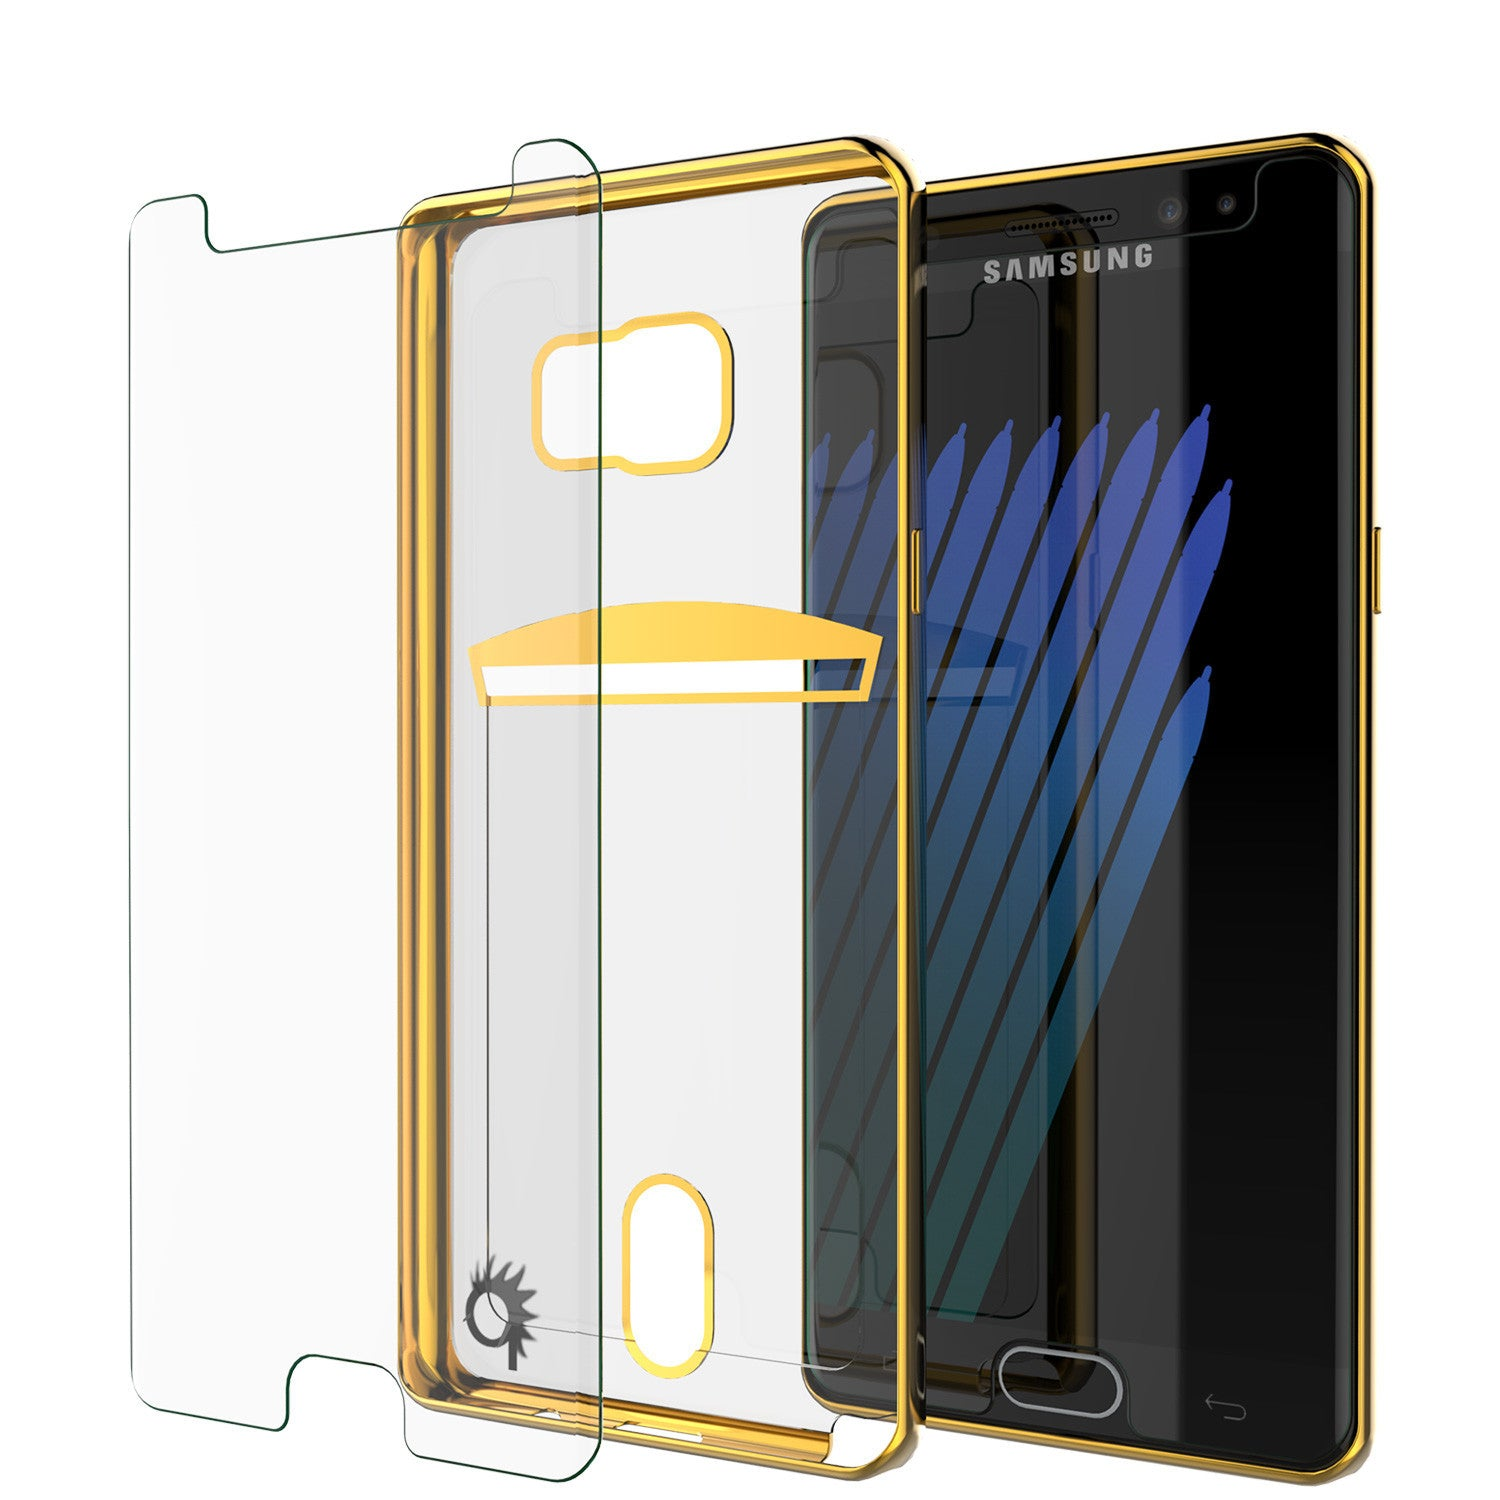 Galaxy Note 7 Case, PUNKCASE® LUCID Gold Series | Card Slot | SHIELD Screen Protector | Ultra fit